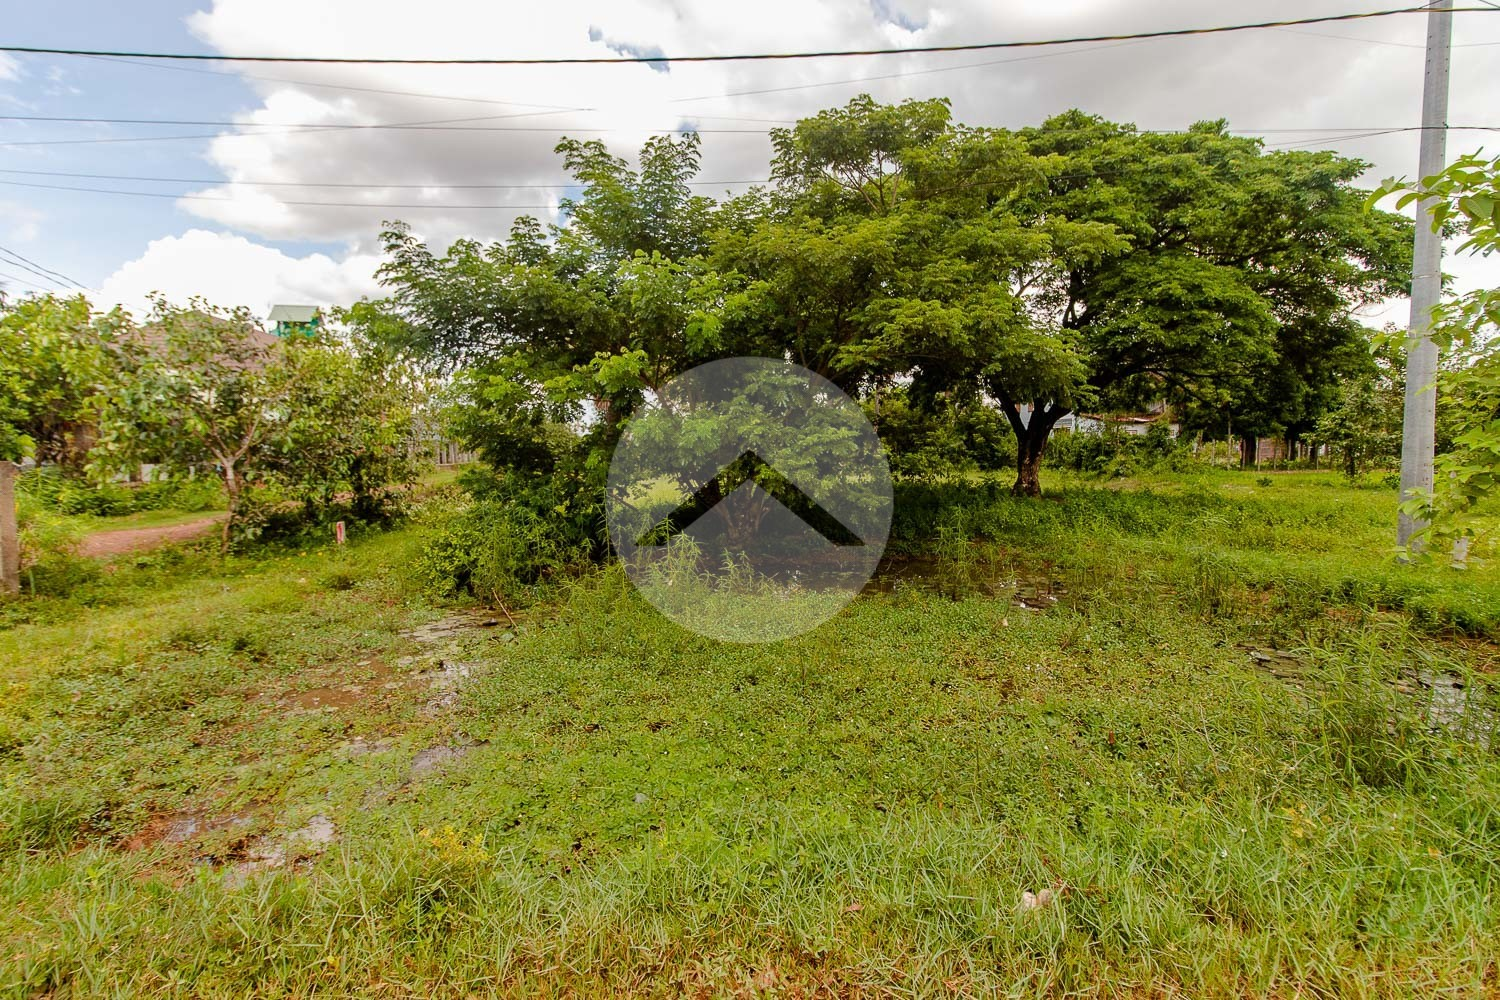 752 Sqm Residential Land For Sale - Sambour, Siem Reap